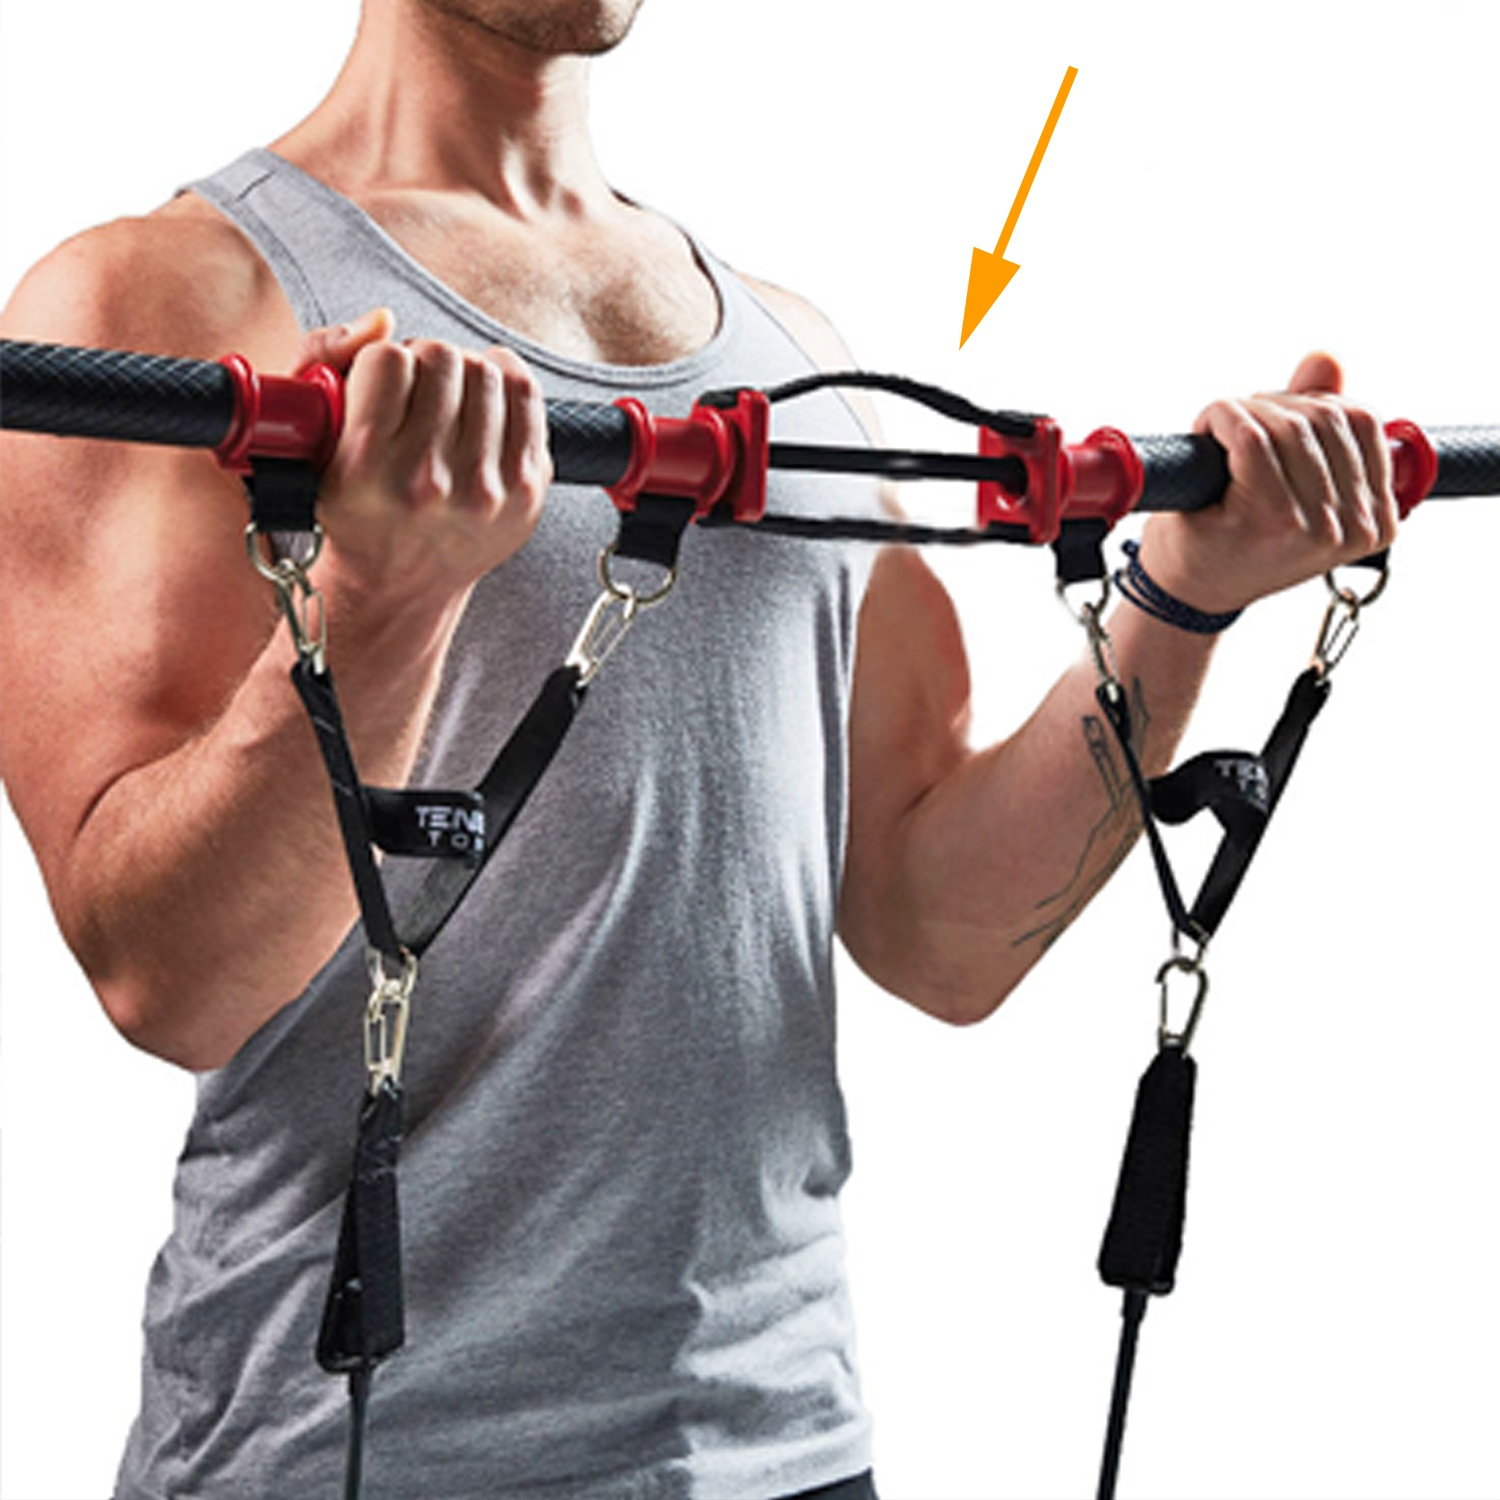 Resistance+band+home+gym+with+entire+exercise+equipment+with+resistance+bands%2C+fitness+workout+bar